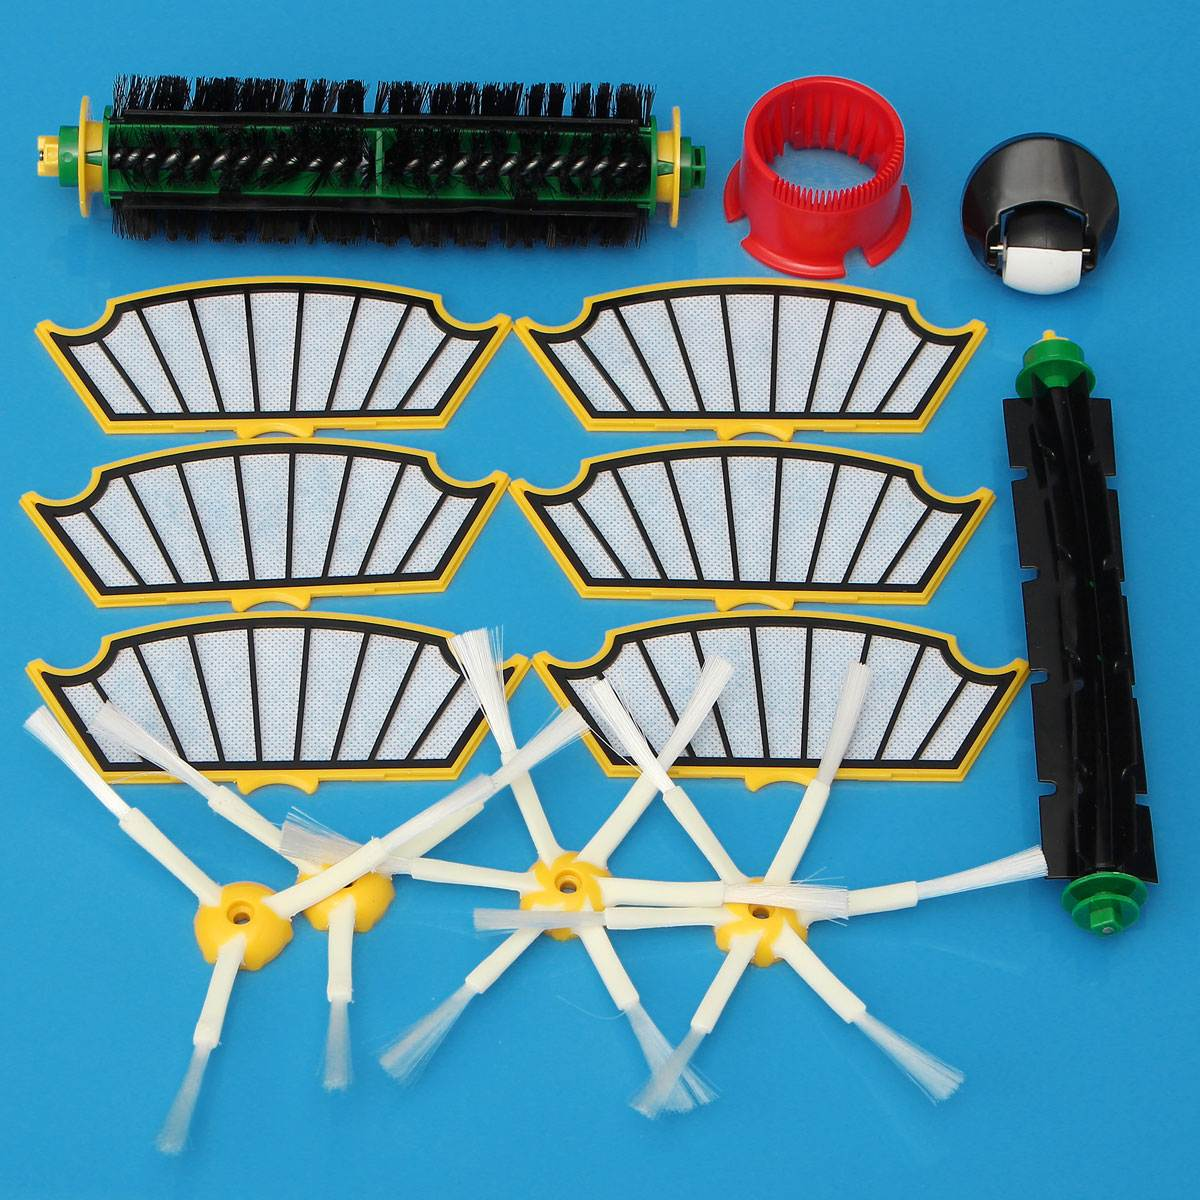 14Pcs Replacement Filter Bristle Brush Round Cleaning Tool Vacuum Cleaner Accessories Kit For iRobot Roomba 500 Series 510 530 vacuum cleaning kit attachement kit dusting dusting brush nozzle crevices tool upholster tool for 32mm